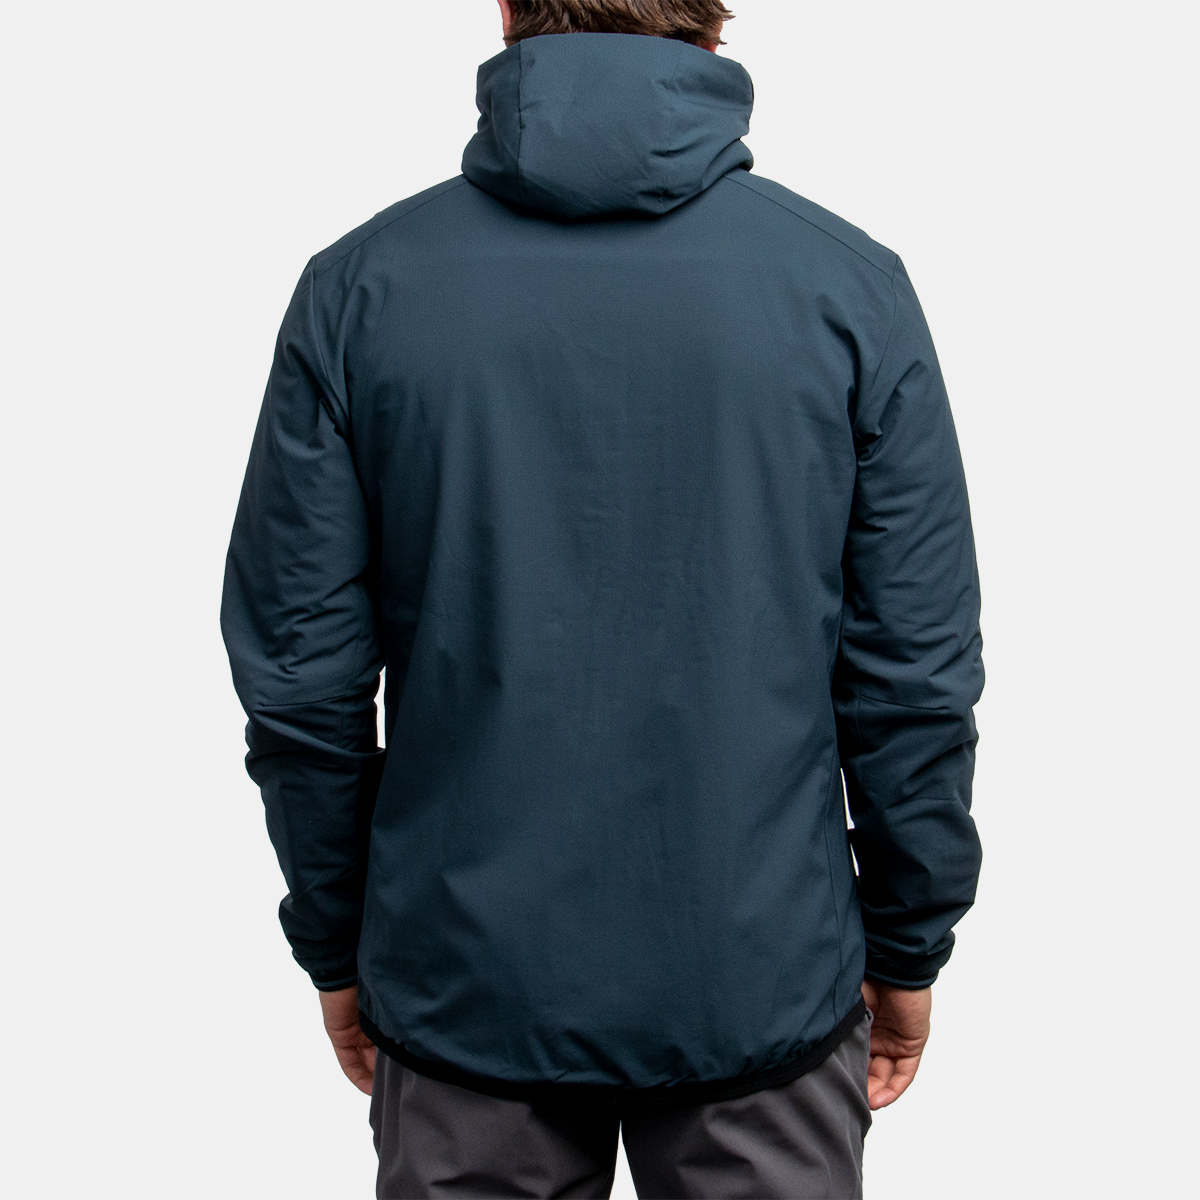 Morning Skate Jacket - Navy